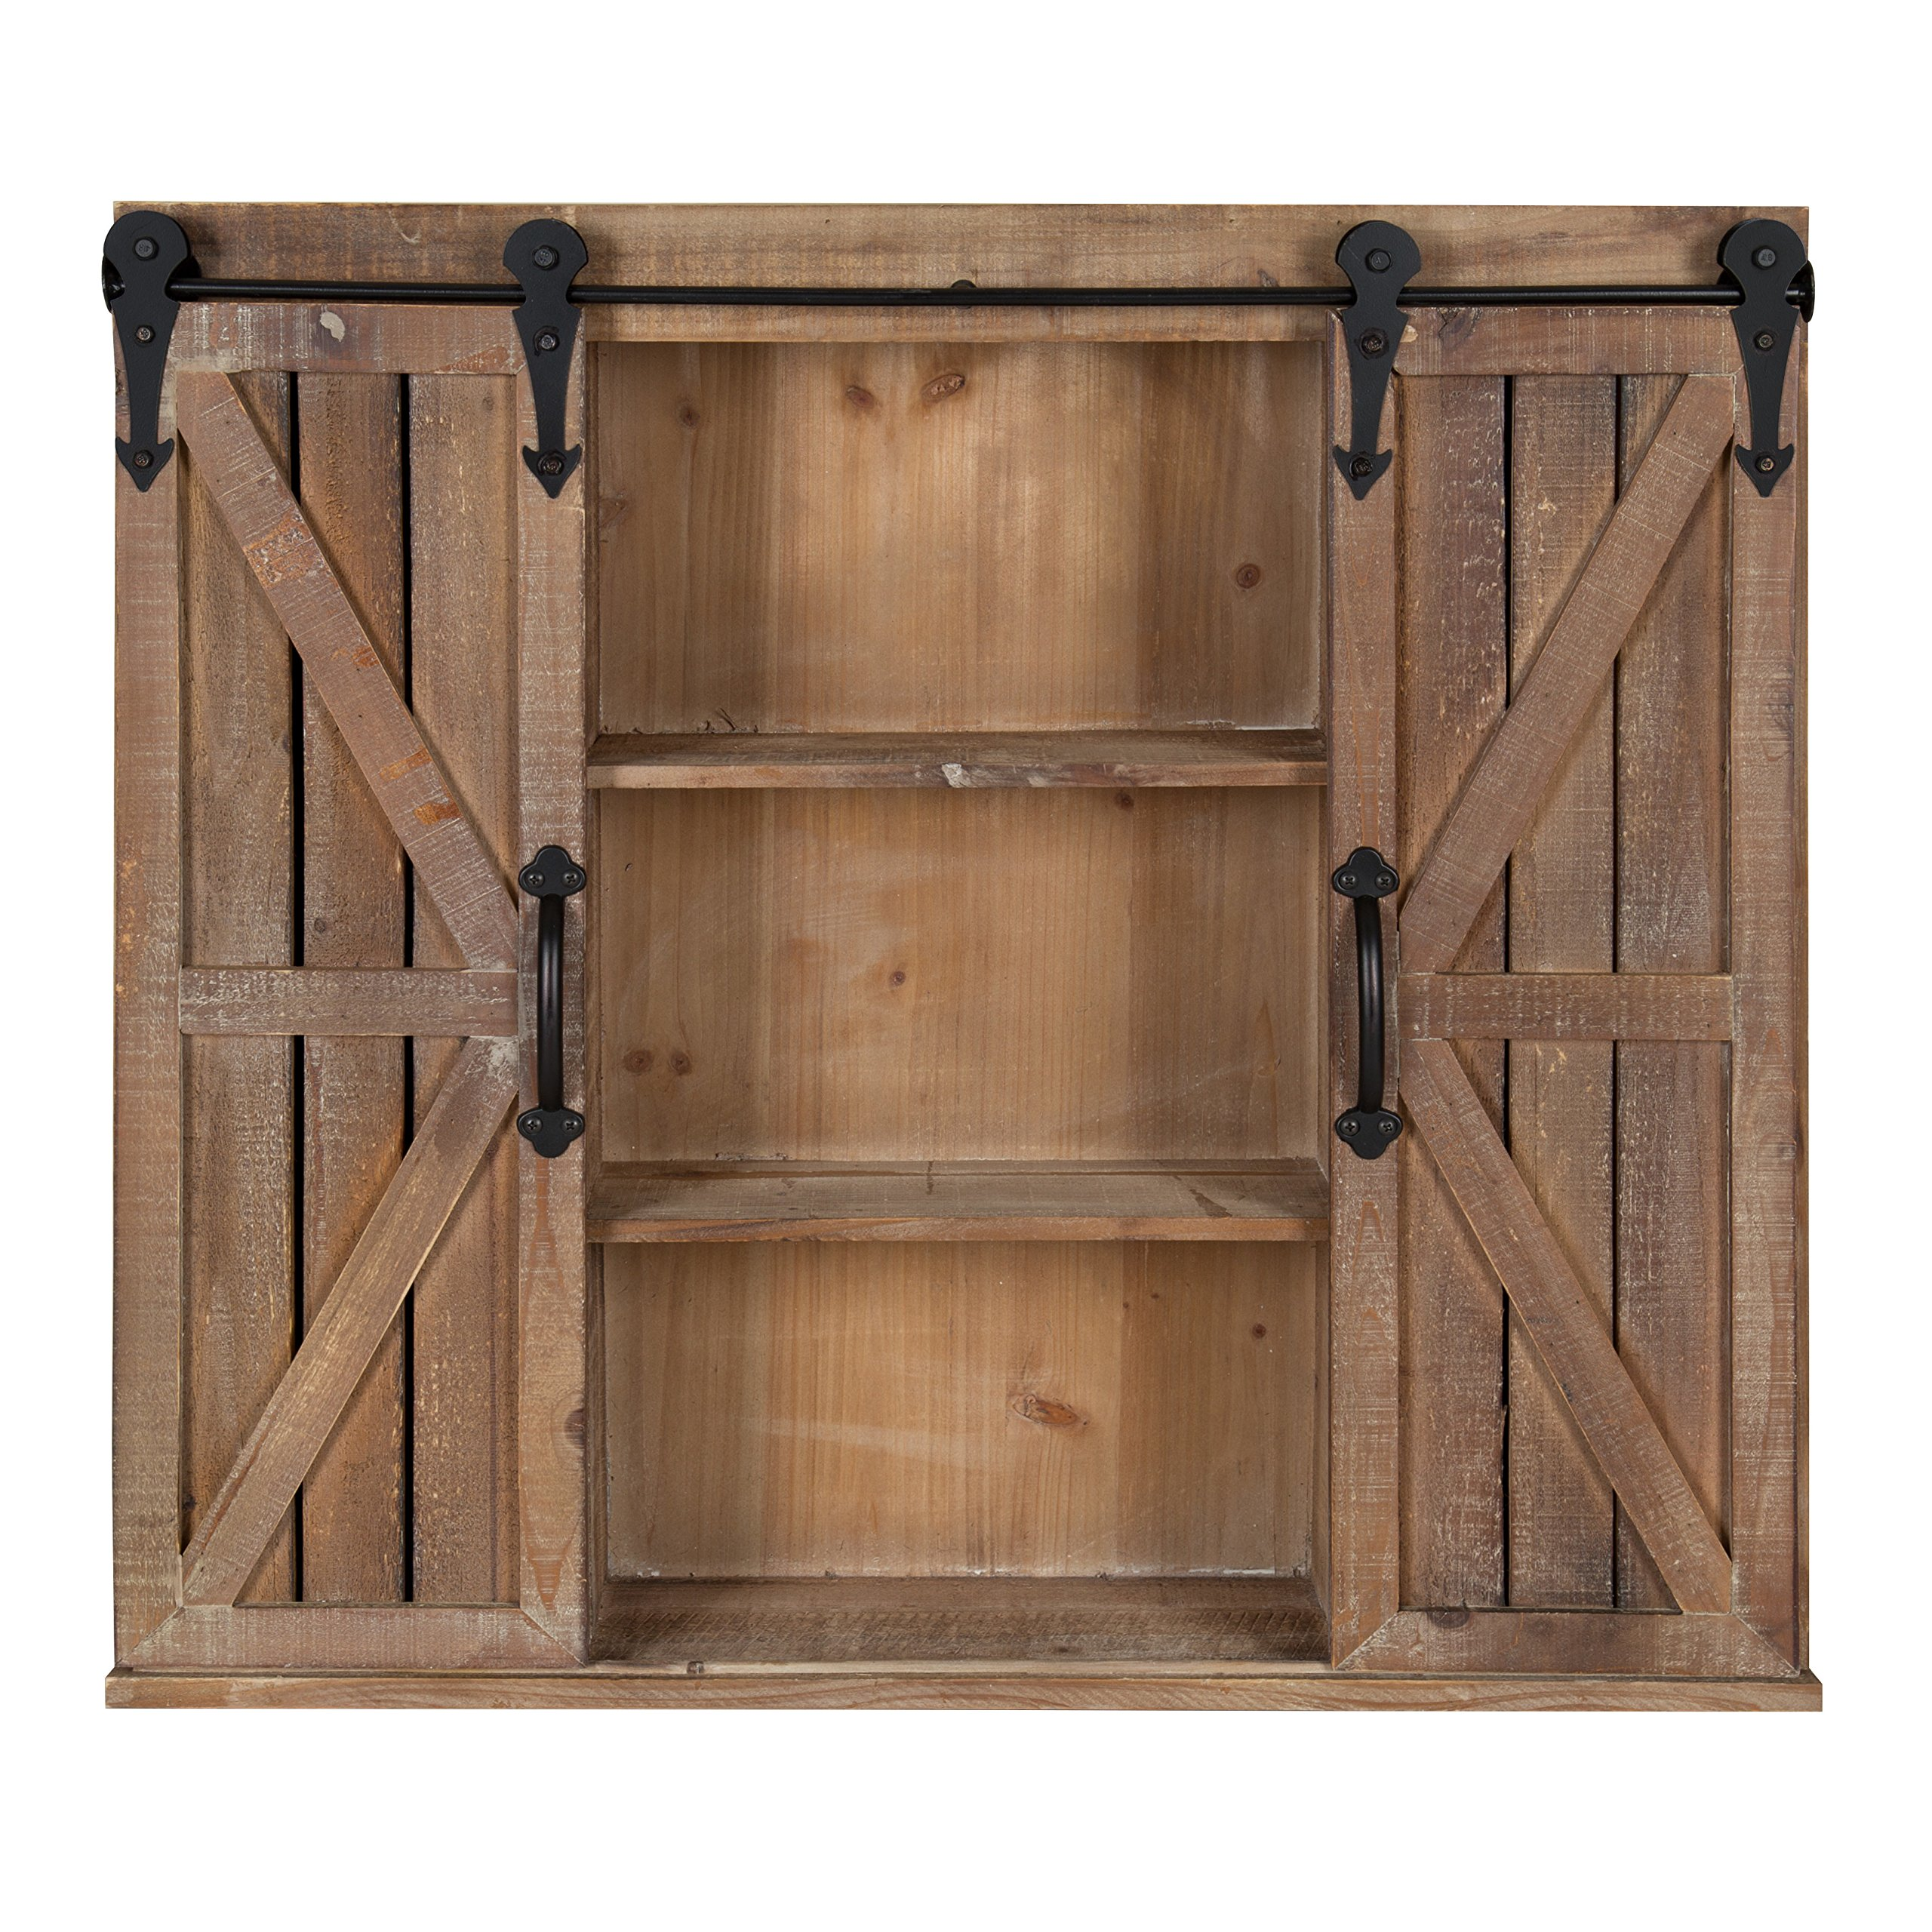 Kate and Laurel Cates Wood Wall Storage Cabinet with Two Sliding Barn Doors, Rustic Brown